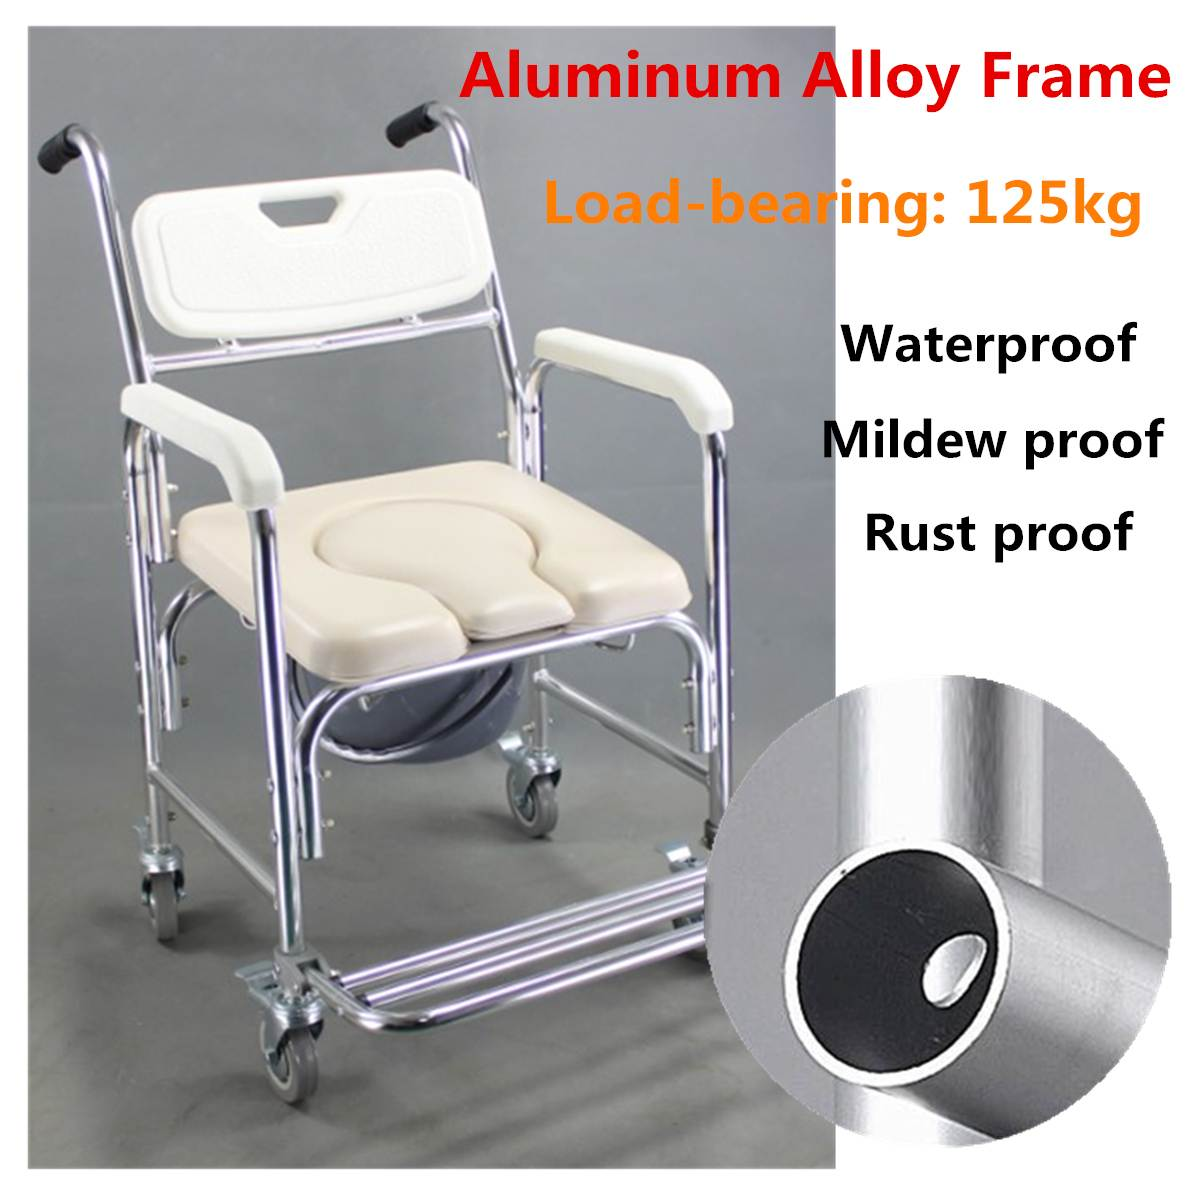 Toilet Seat Chair Elderly Bath Shower with Armrests Backrest Toilet Chairs Shower Chair Pregnant Women Spa Bench Bathroom ChairToilet Seat Chair Elderly Bath Shower with Armrests Backrest Toilet Chairs Shower Chair Pregnant Women Spa Bench Bathroom Chair